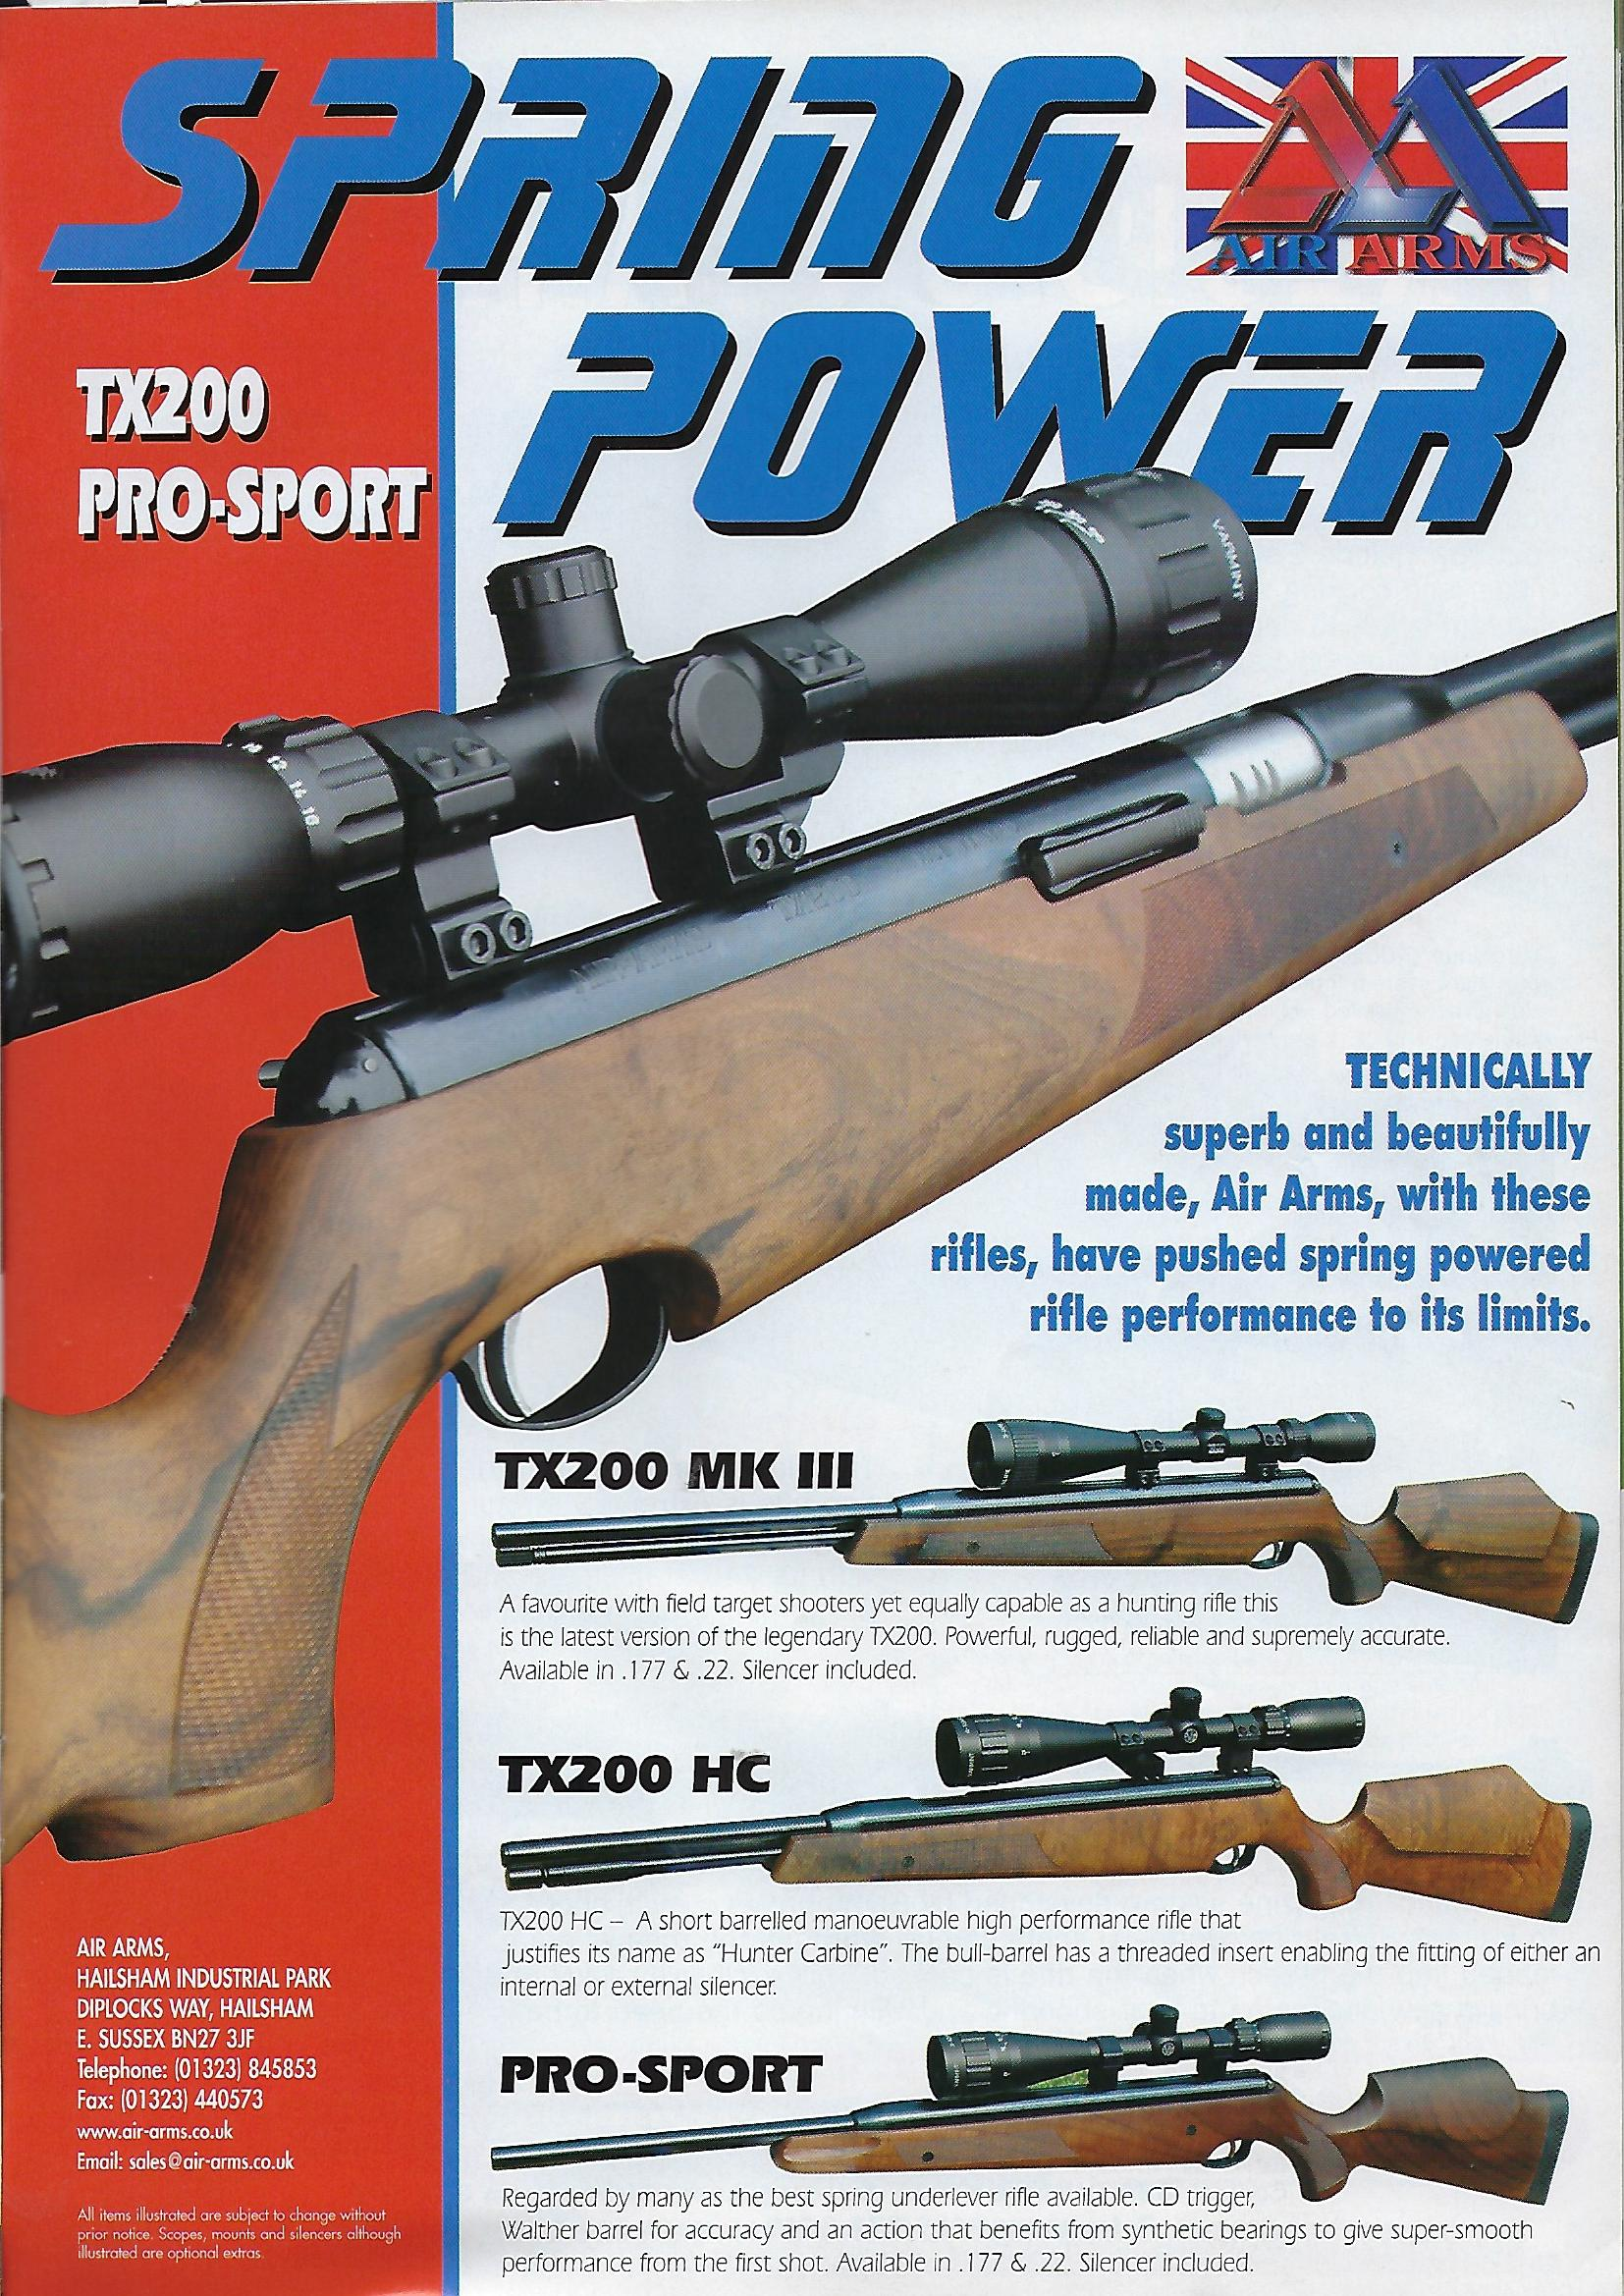 AGW - OCTOBER 2005 - AA AD 2.jpg